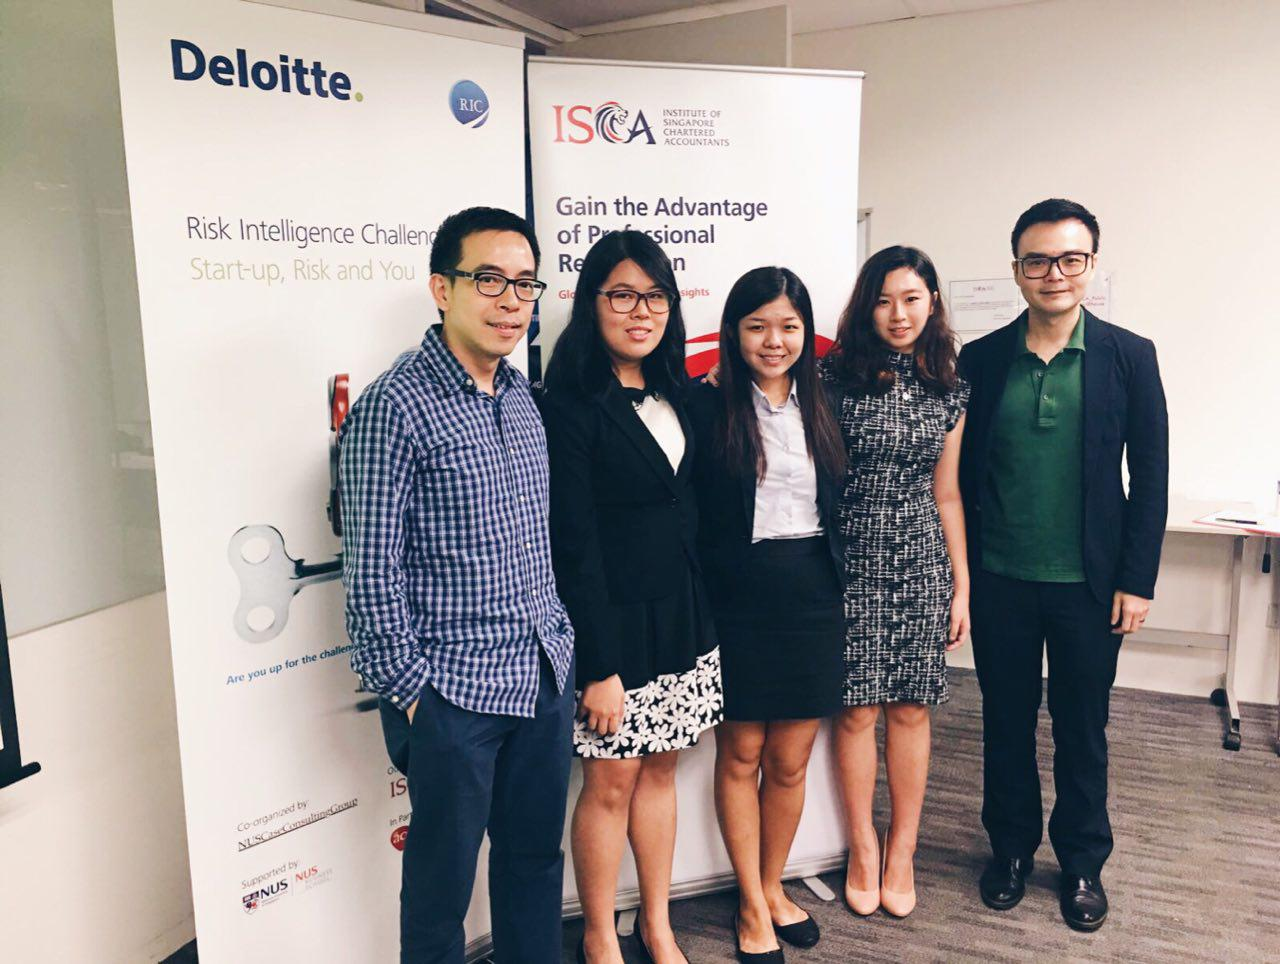 Grace and team at Deloitte's Risk Intelligence Challenge